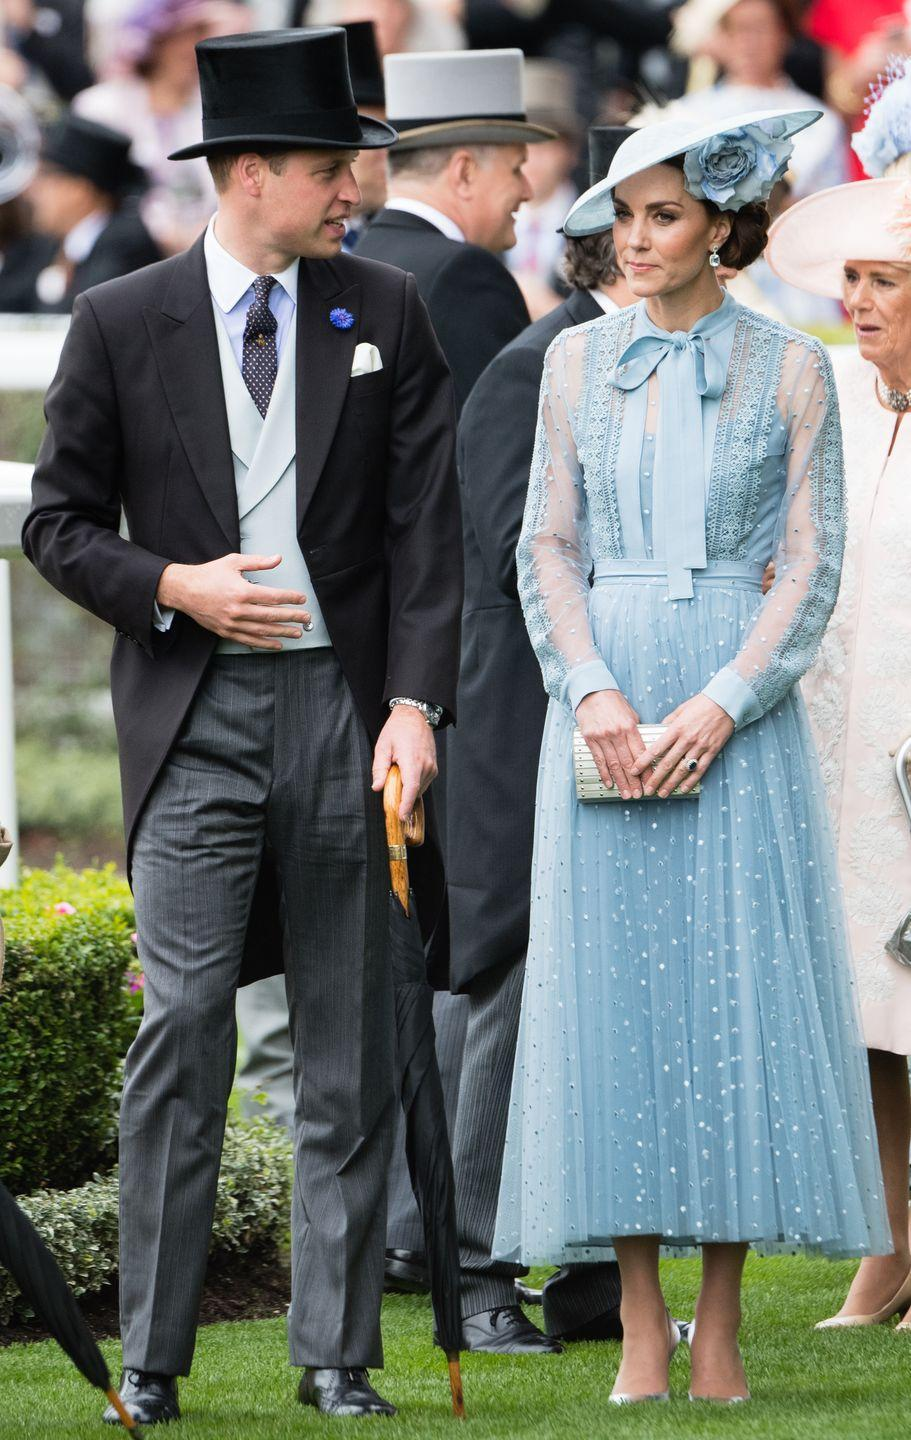 """<p>...that we're <em>not</em> going to get into, but it caused a lot of tension and headlines, including one that claimed <a href=""""https://www.cosmopolitan.com/entertainment/a26926658/kate-middleton-pissed-rural-rival-rose-hanbury-feud/"""" rel=""""nofollow noopener"""" target=""""_blank"""" data-ylk=""""slk:Kate had an ongoing rivalry with Rose Hanbury"""" class=""""link rapid-noclick-resp"""">Kate had an ongoing rivalry with Rose Hanbury</a>, a close family friend of the couple. </p>"""